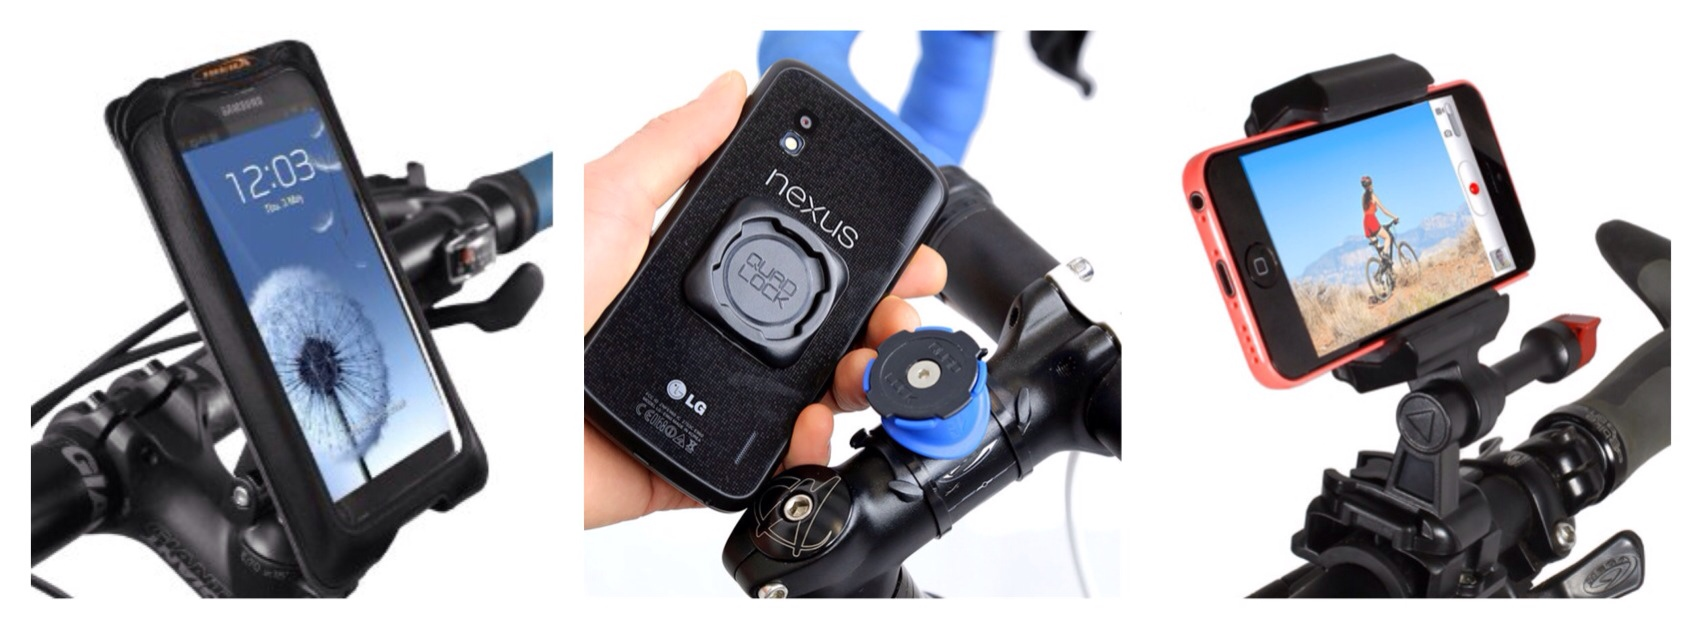 sports shoes aeaad b9e7d The Best Bike Smartphone Cases & Mounts for Cycling - CyclingAbout.com